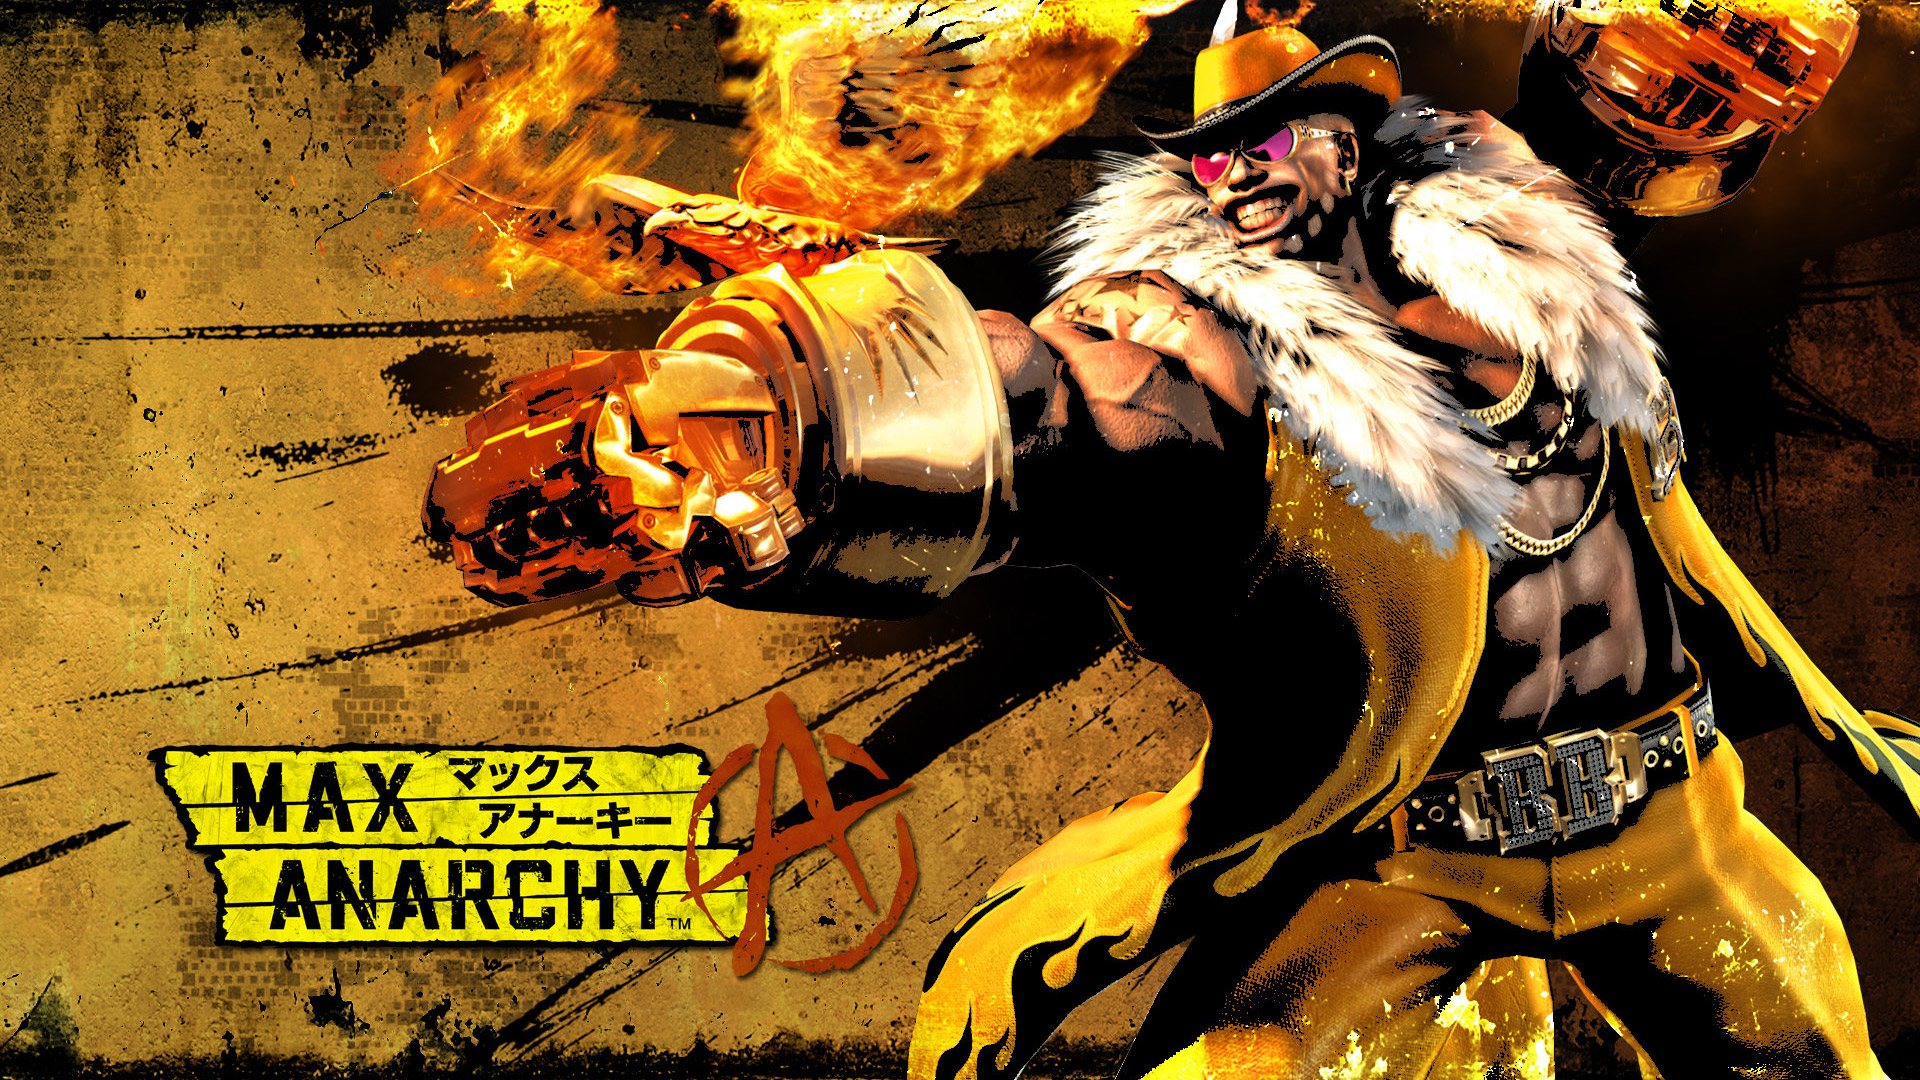 Anarchy Reigns wallpaper 1